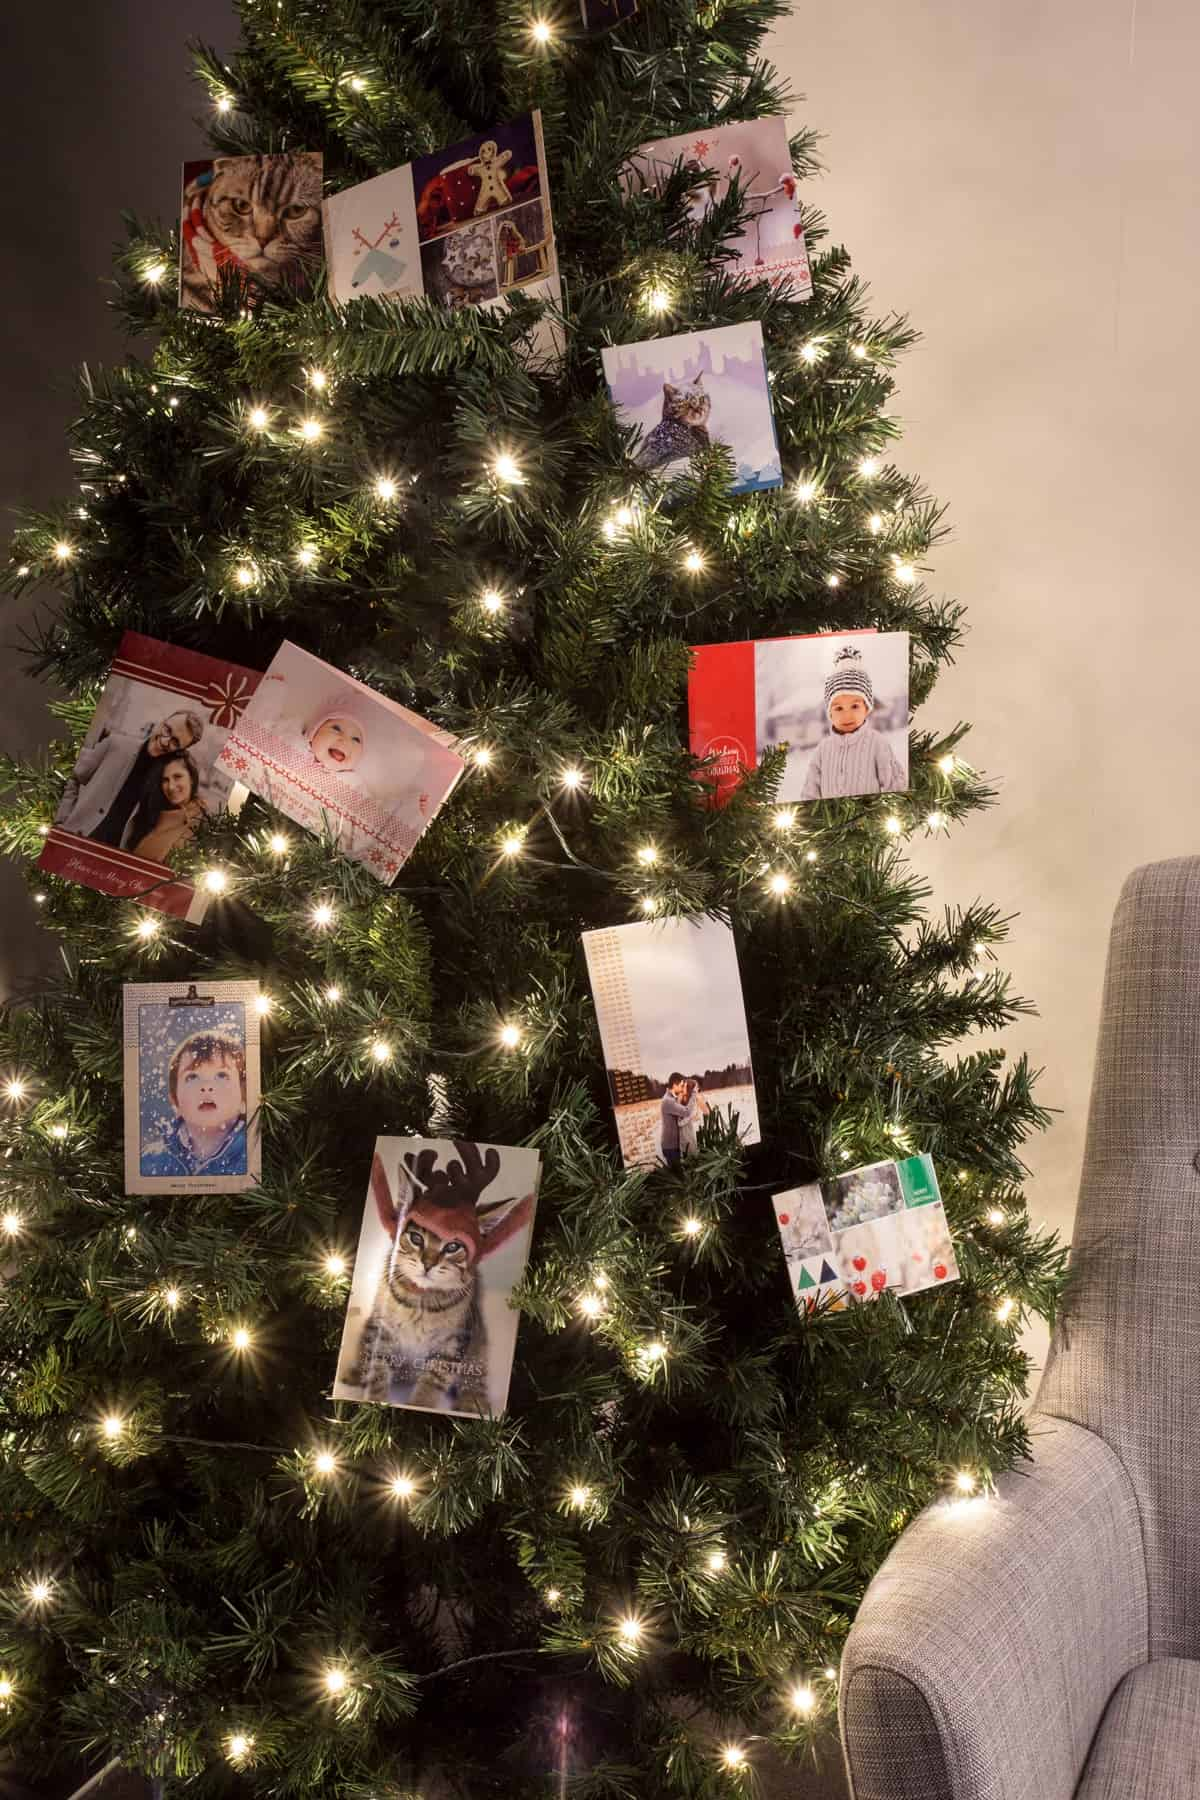 Christmas tree with cards as ornaments